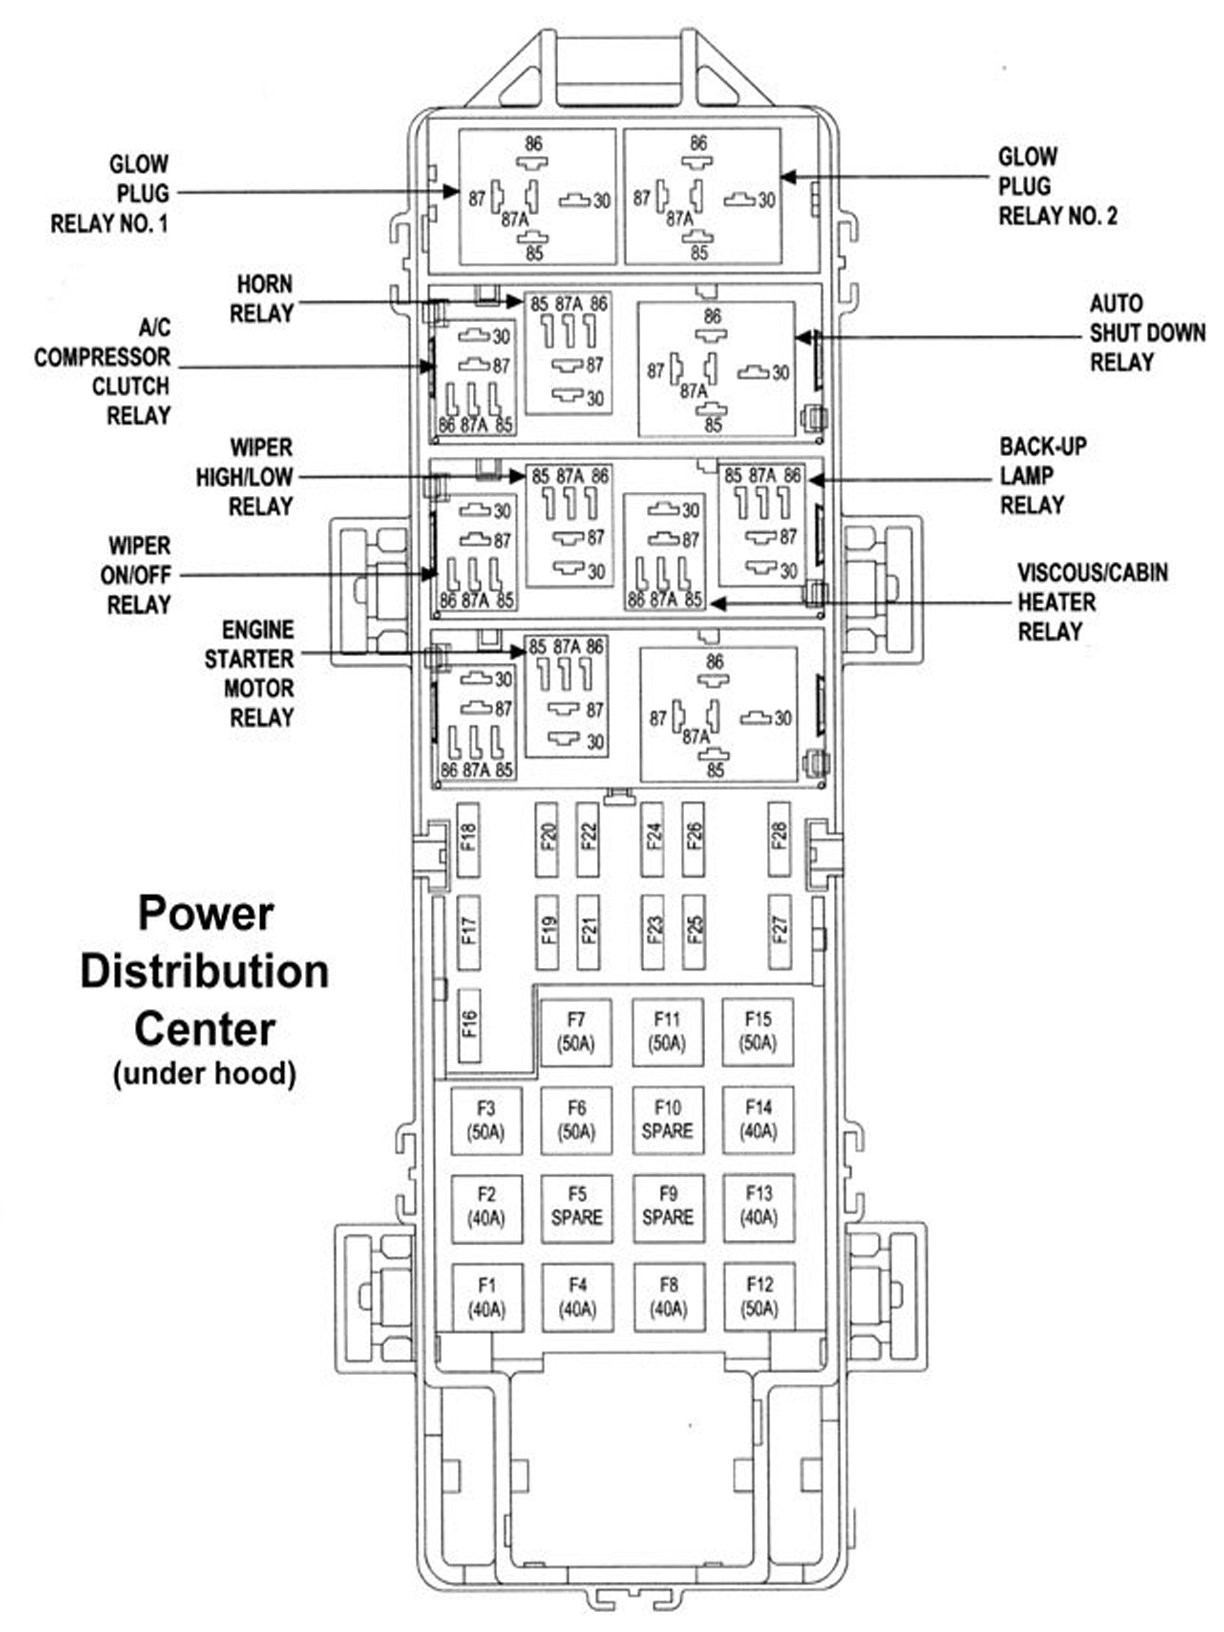 2002 jeep grand cherokee wiring diagram for led lights engine my